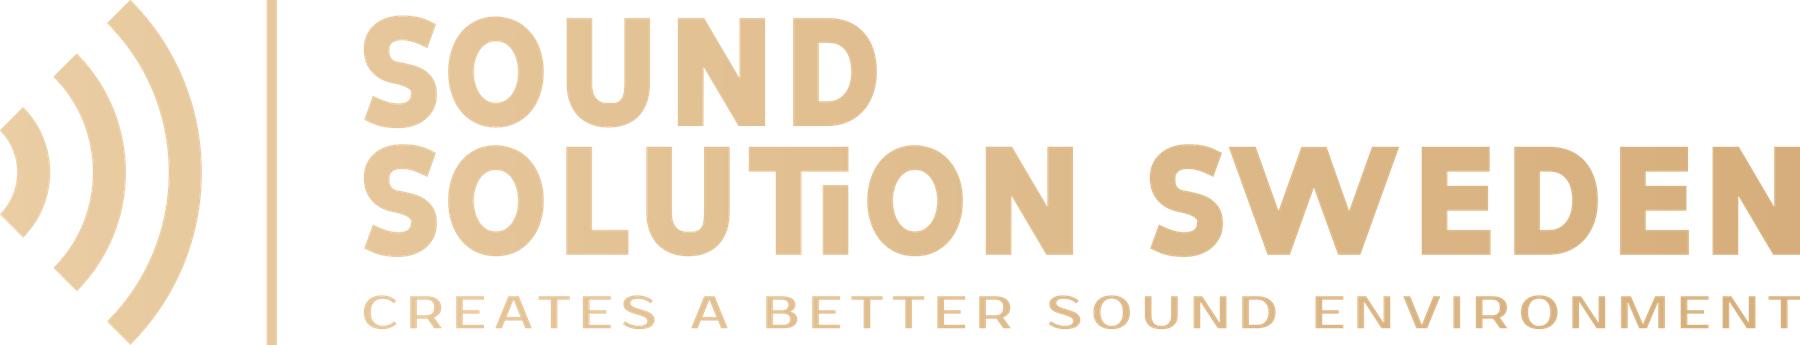 Sound Solution Sweden - Creates a better sound environment